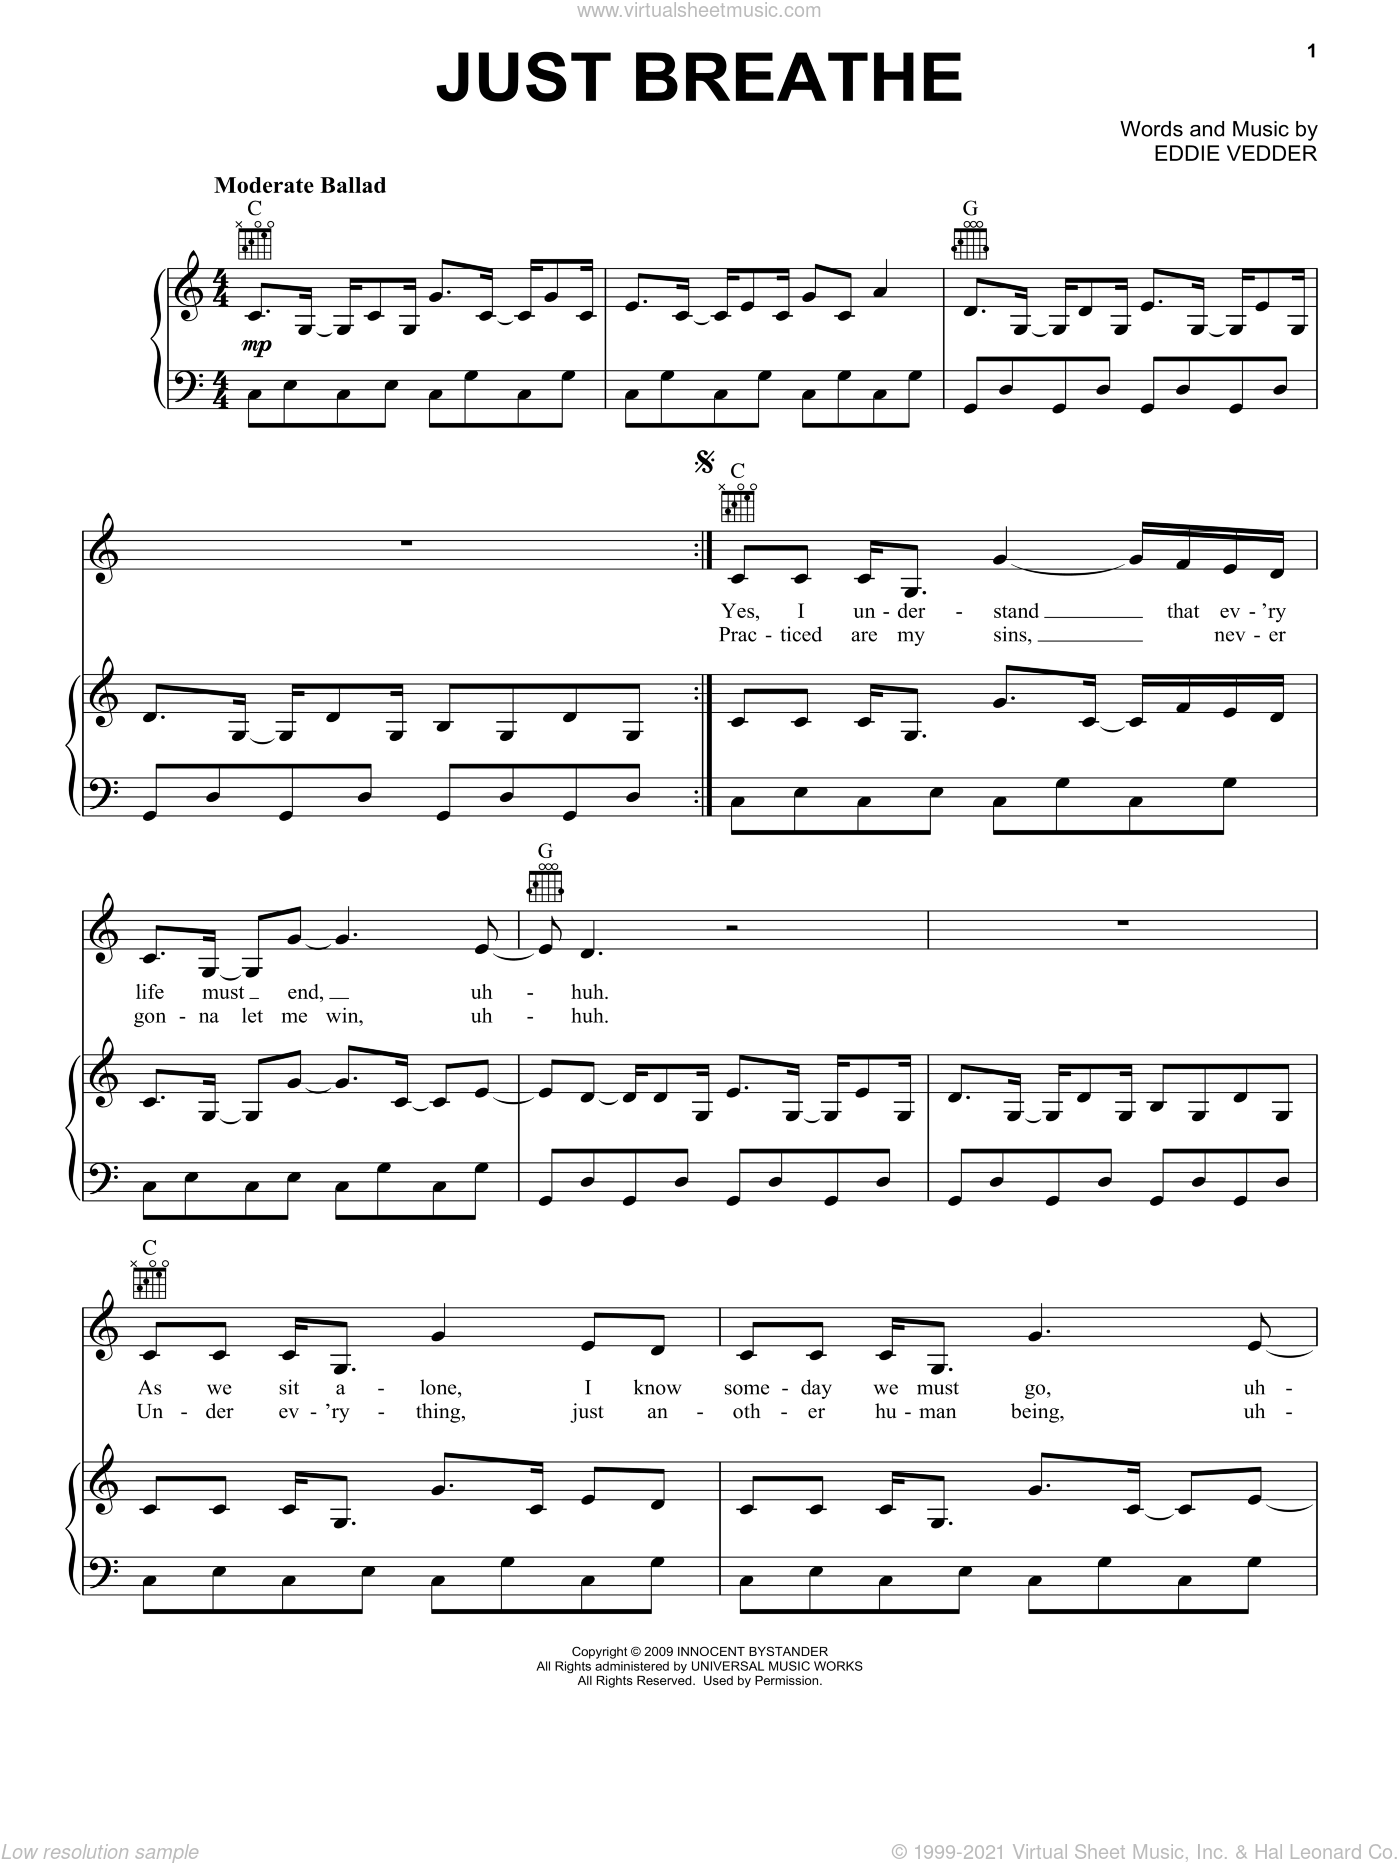 Just Breathe sheet music for voice, piano or guitar by Eddie Vedder